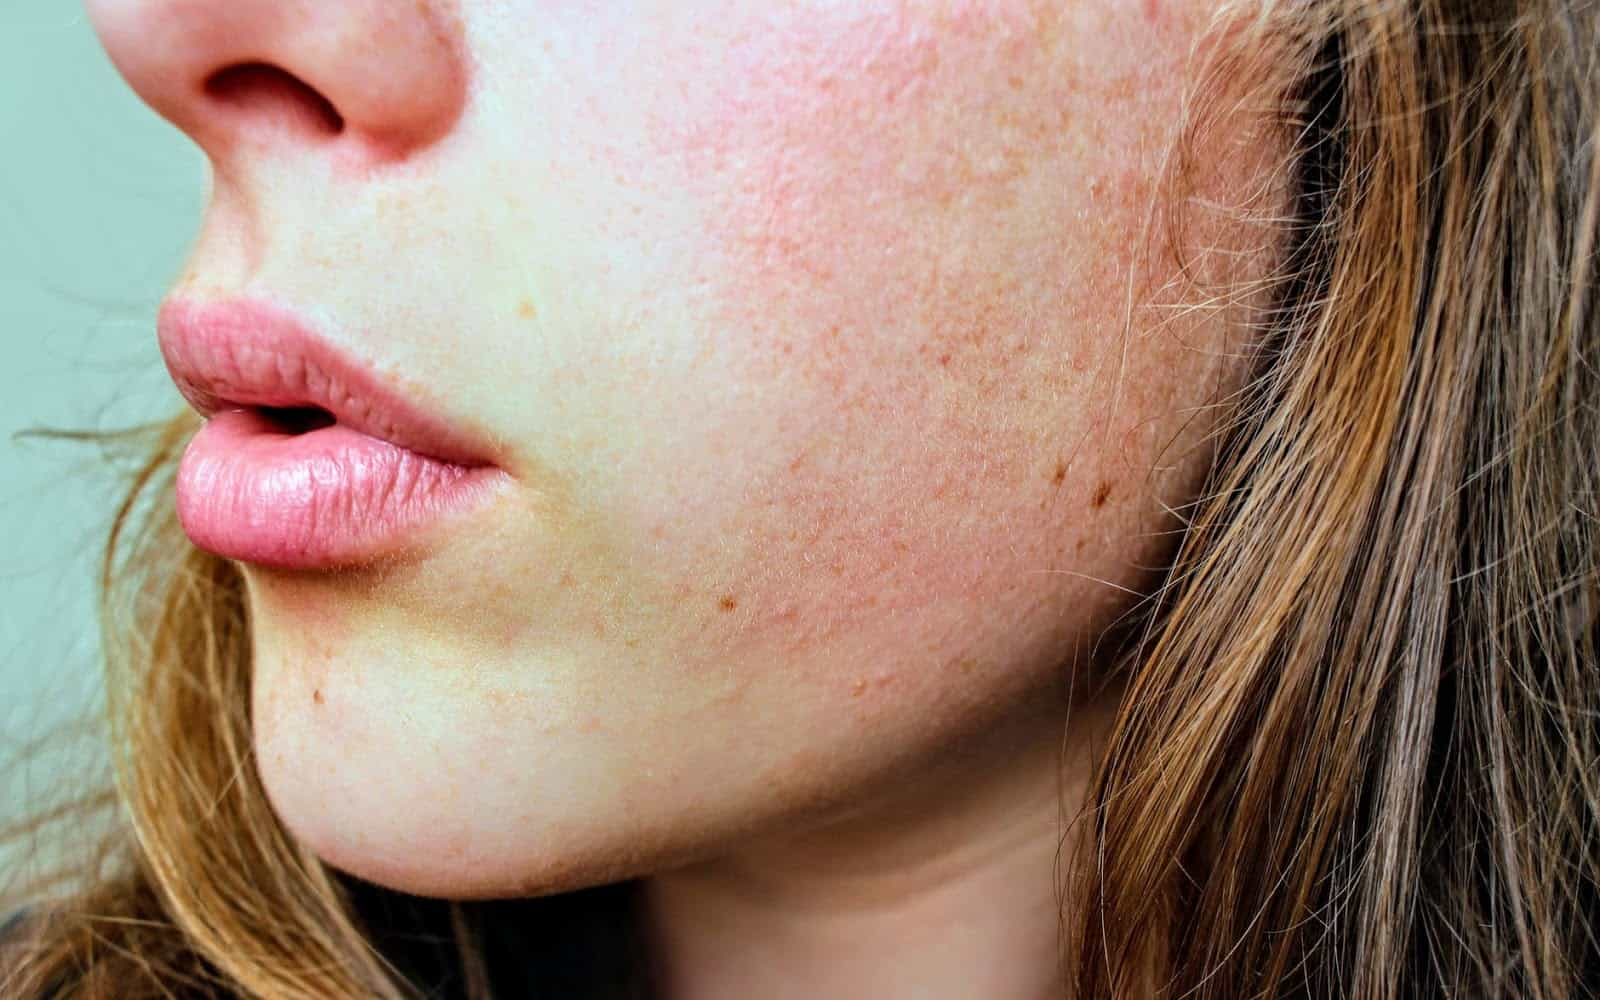 benefits of CBD for irritated skin